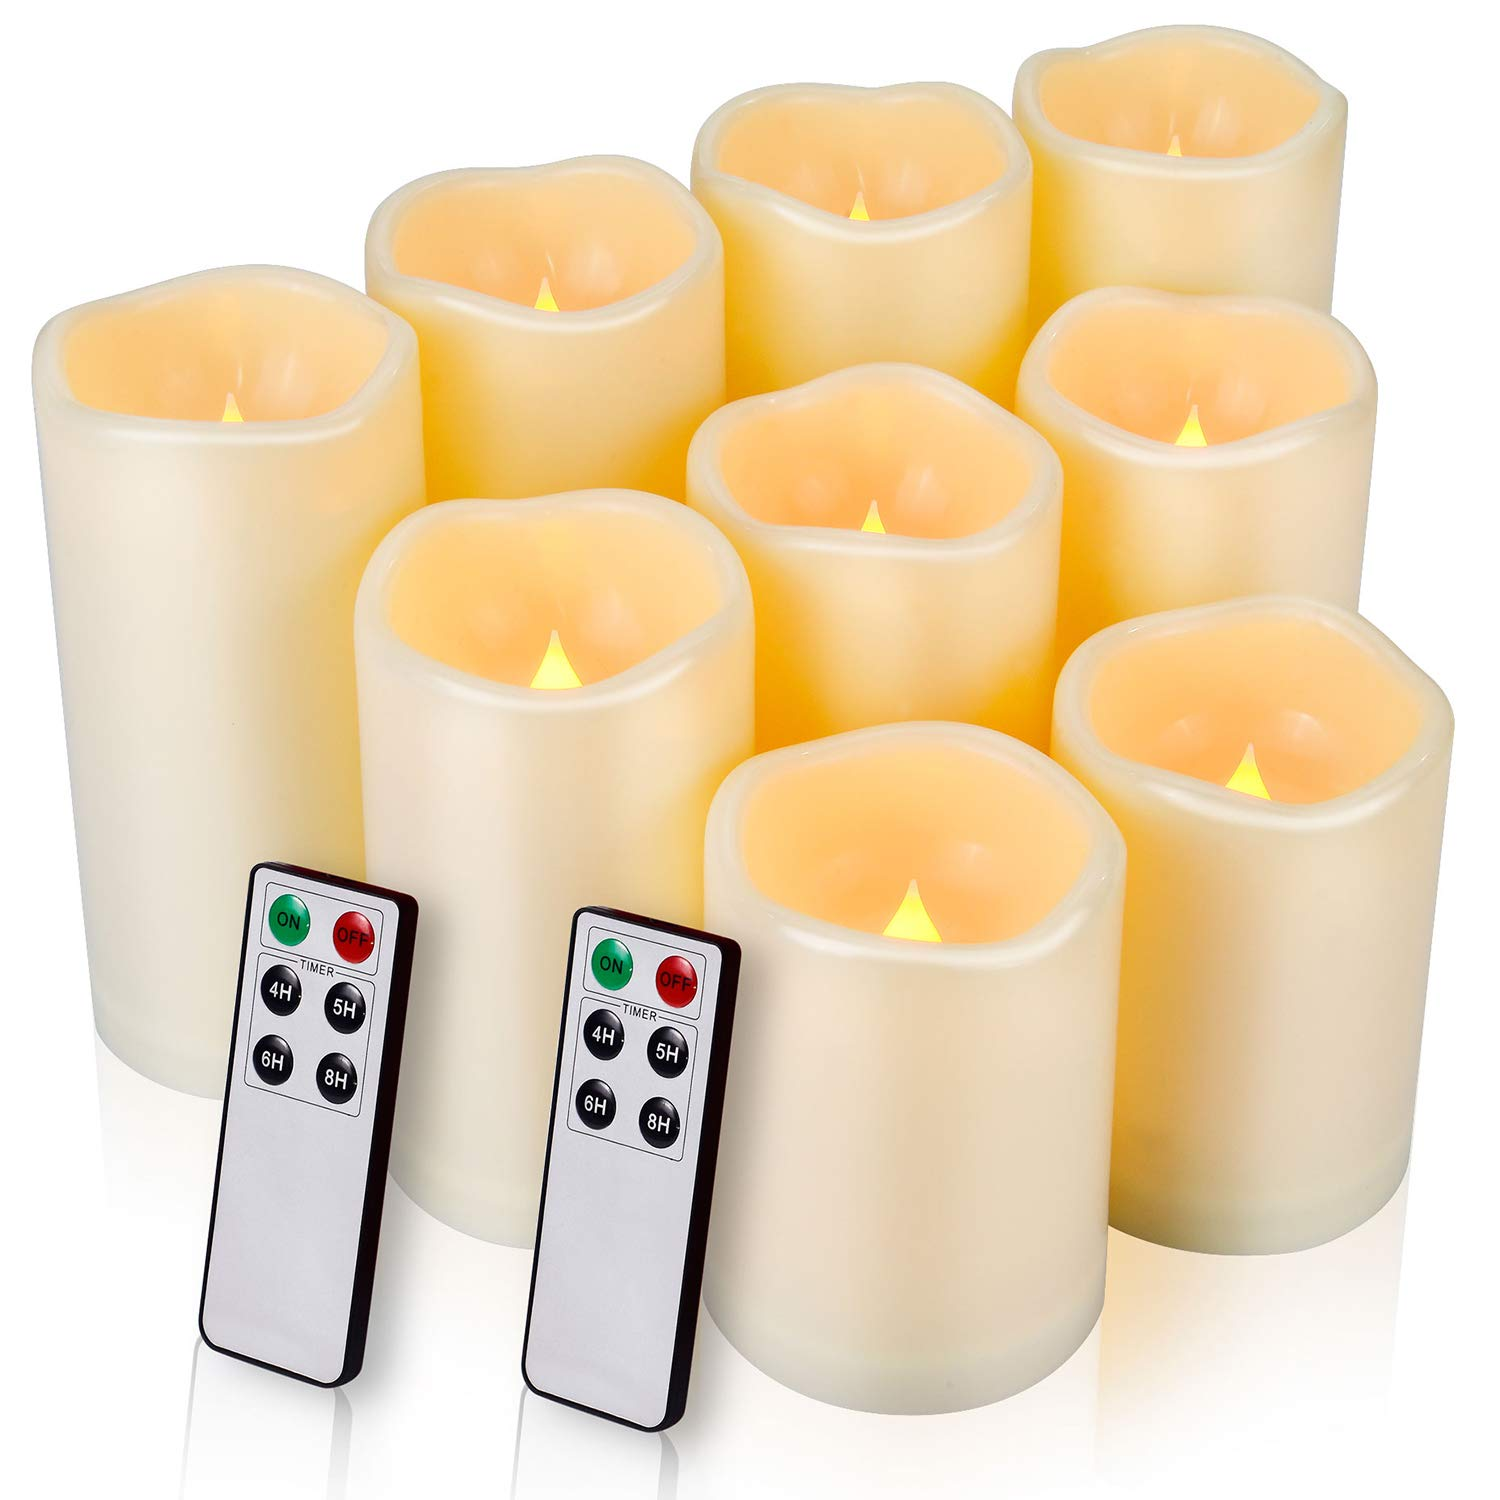 Flameless Candles LED Candles Outdoor Candles Waterproof Candles(D: 3'' x H: 4''5''6'') Battery Operated Candles Plastic Pack of 9 (Battery Not Included) by Enido